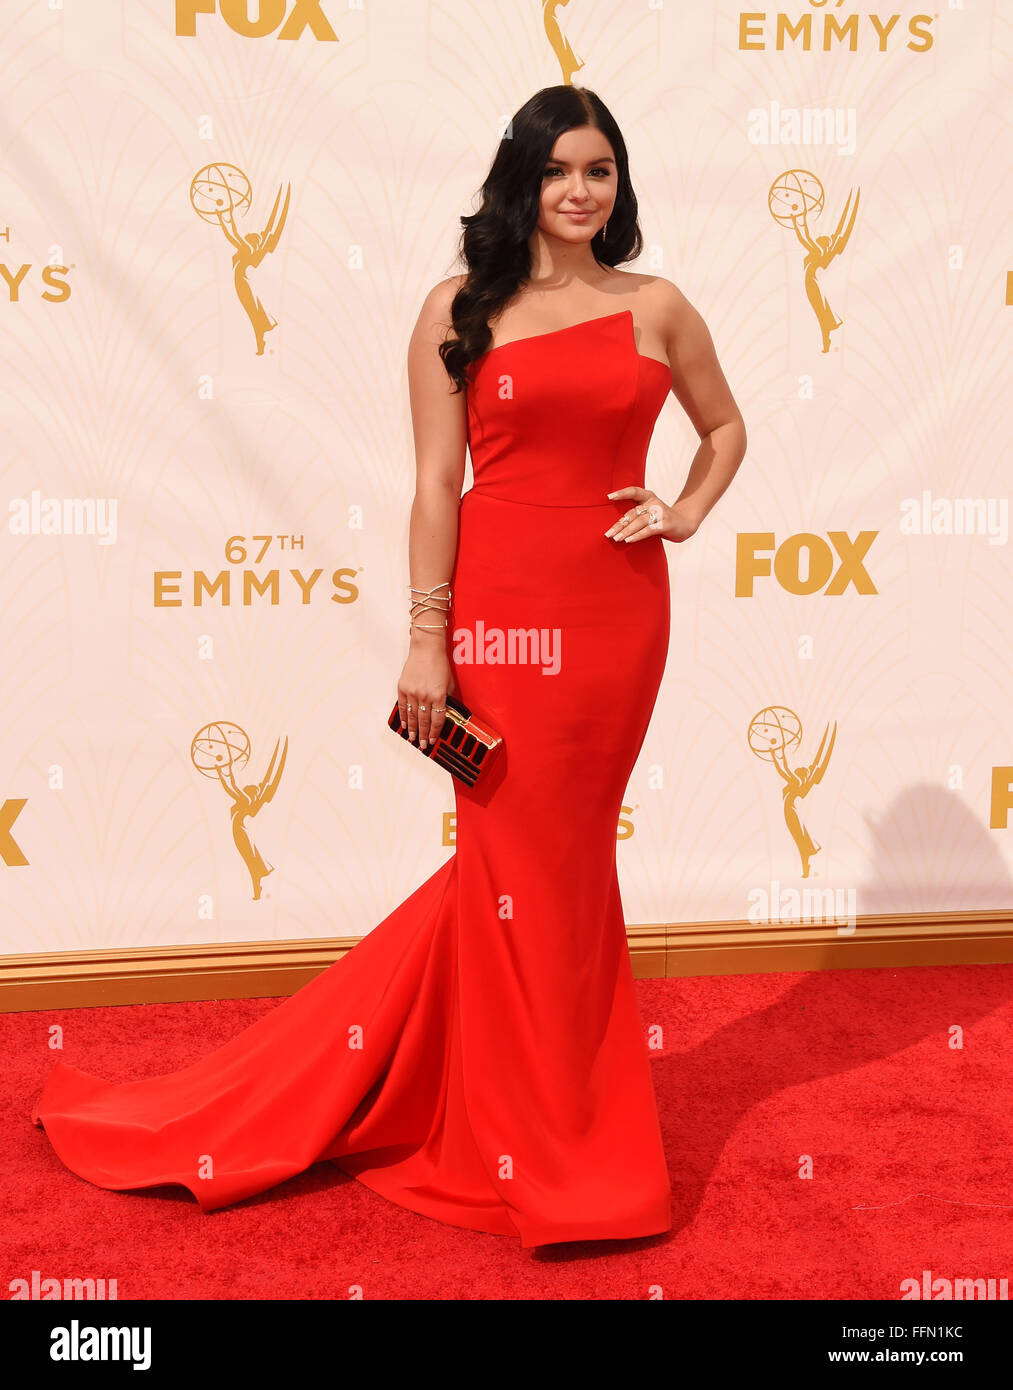 Actress Ariel Winter attends the 67th Annual Primetime Emmy Awards at Microsoft Theater on September 20, 2015 in - Stock Image